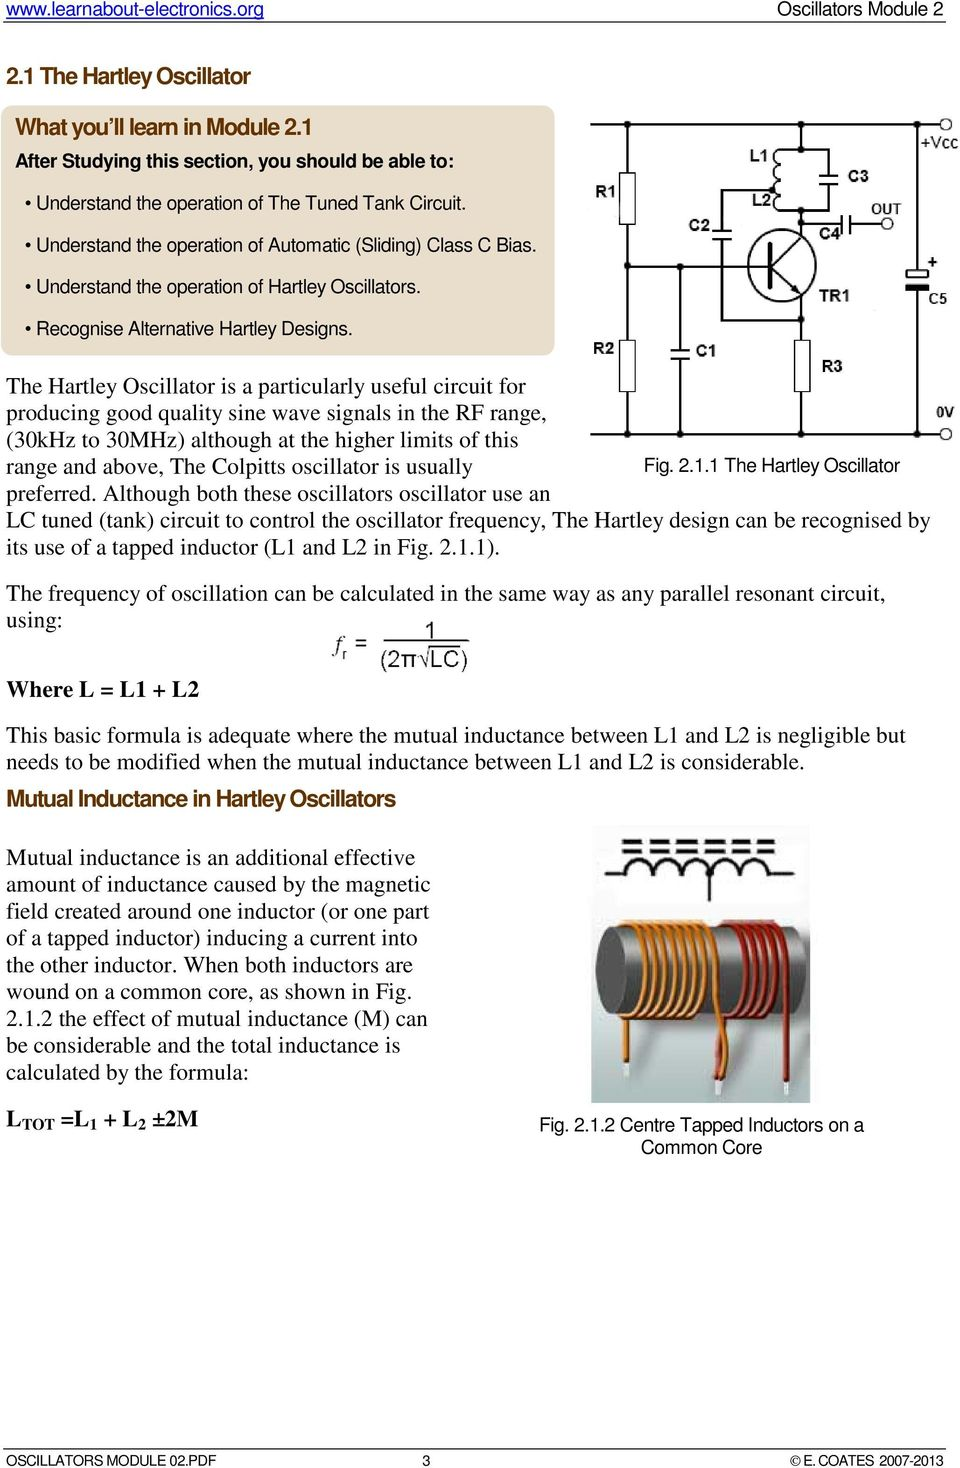 Oscillators 20 Rf Sine Wave Module Pdf To Ttl Converter Circuit Diagram The Hartley Oscillator Is A Particularly Useful For Producing Good Quality Signals In